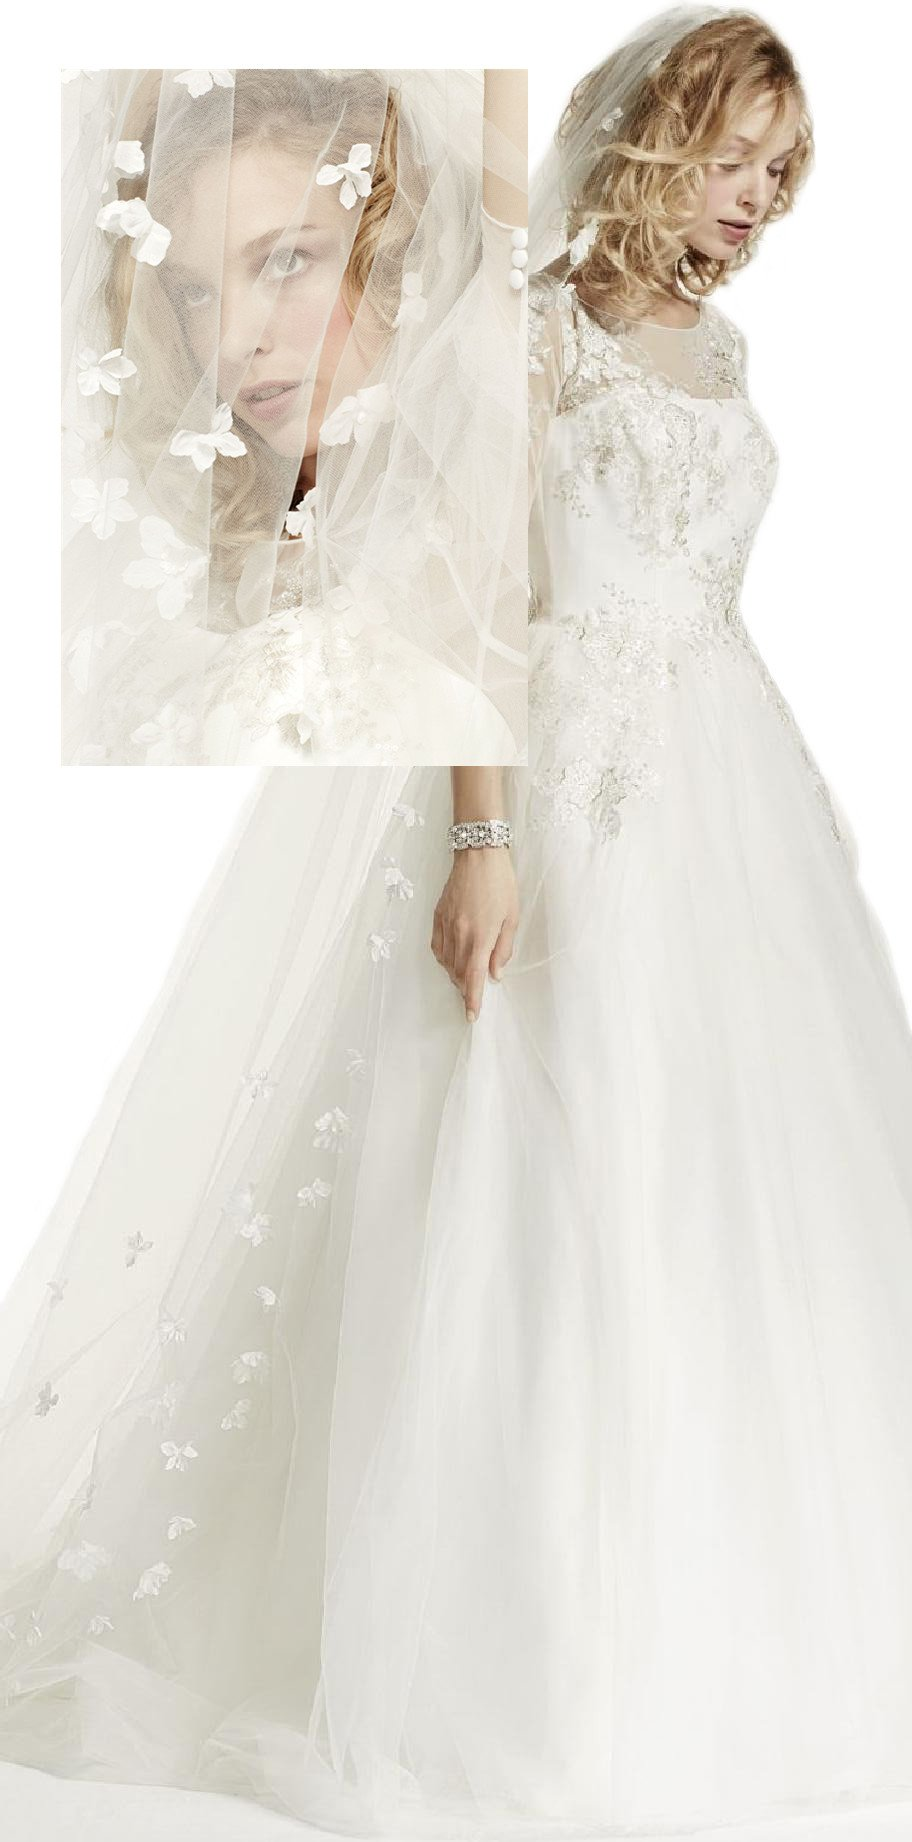 Passat Diamond White Single-Tier 3M Cathedral 3D Scattered Floral Wedding Veil DB90